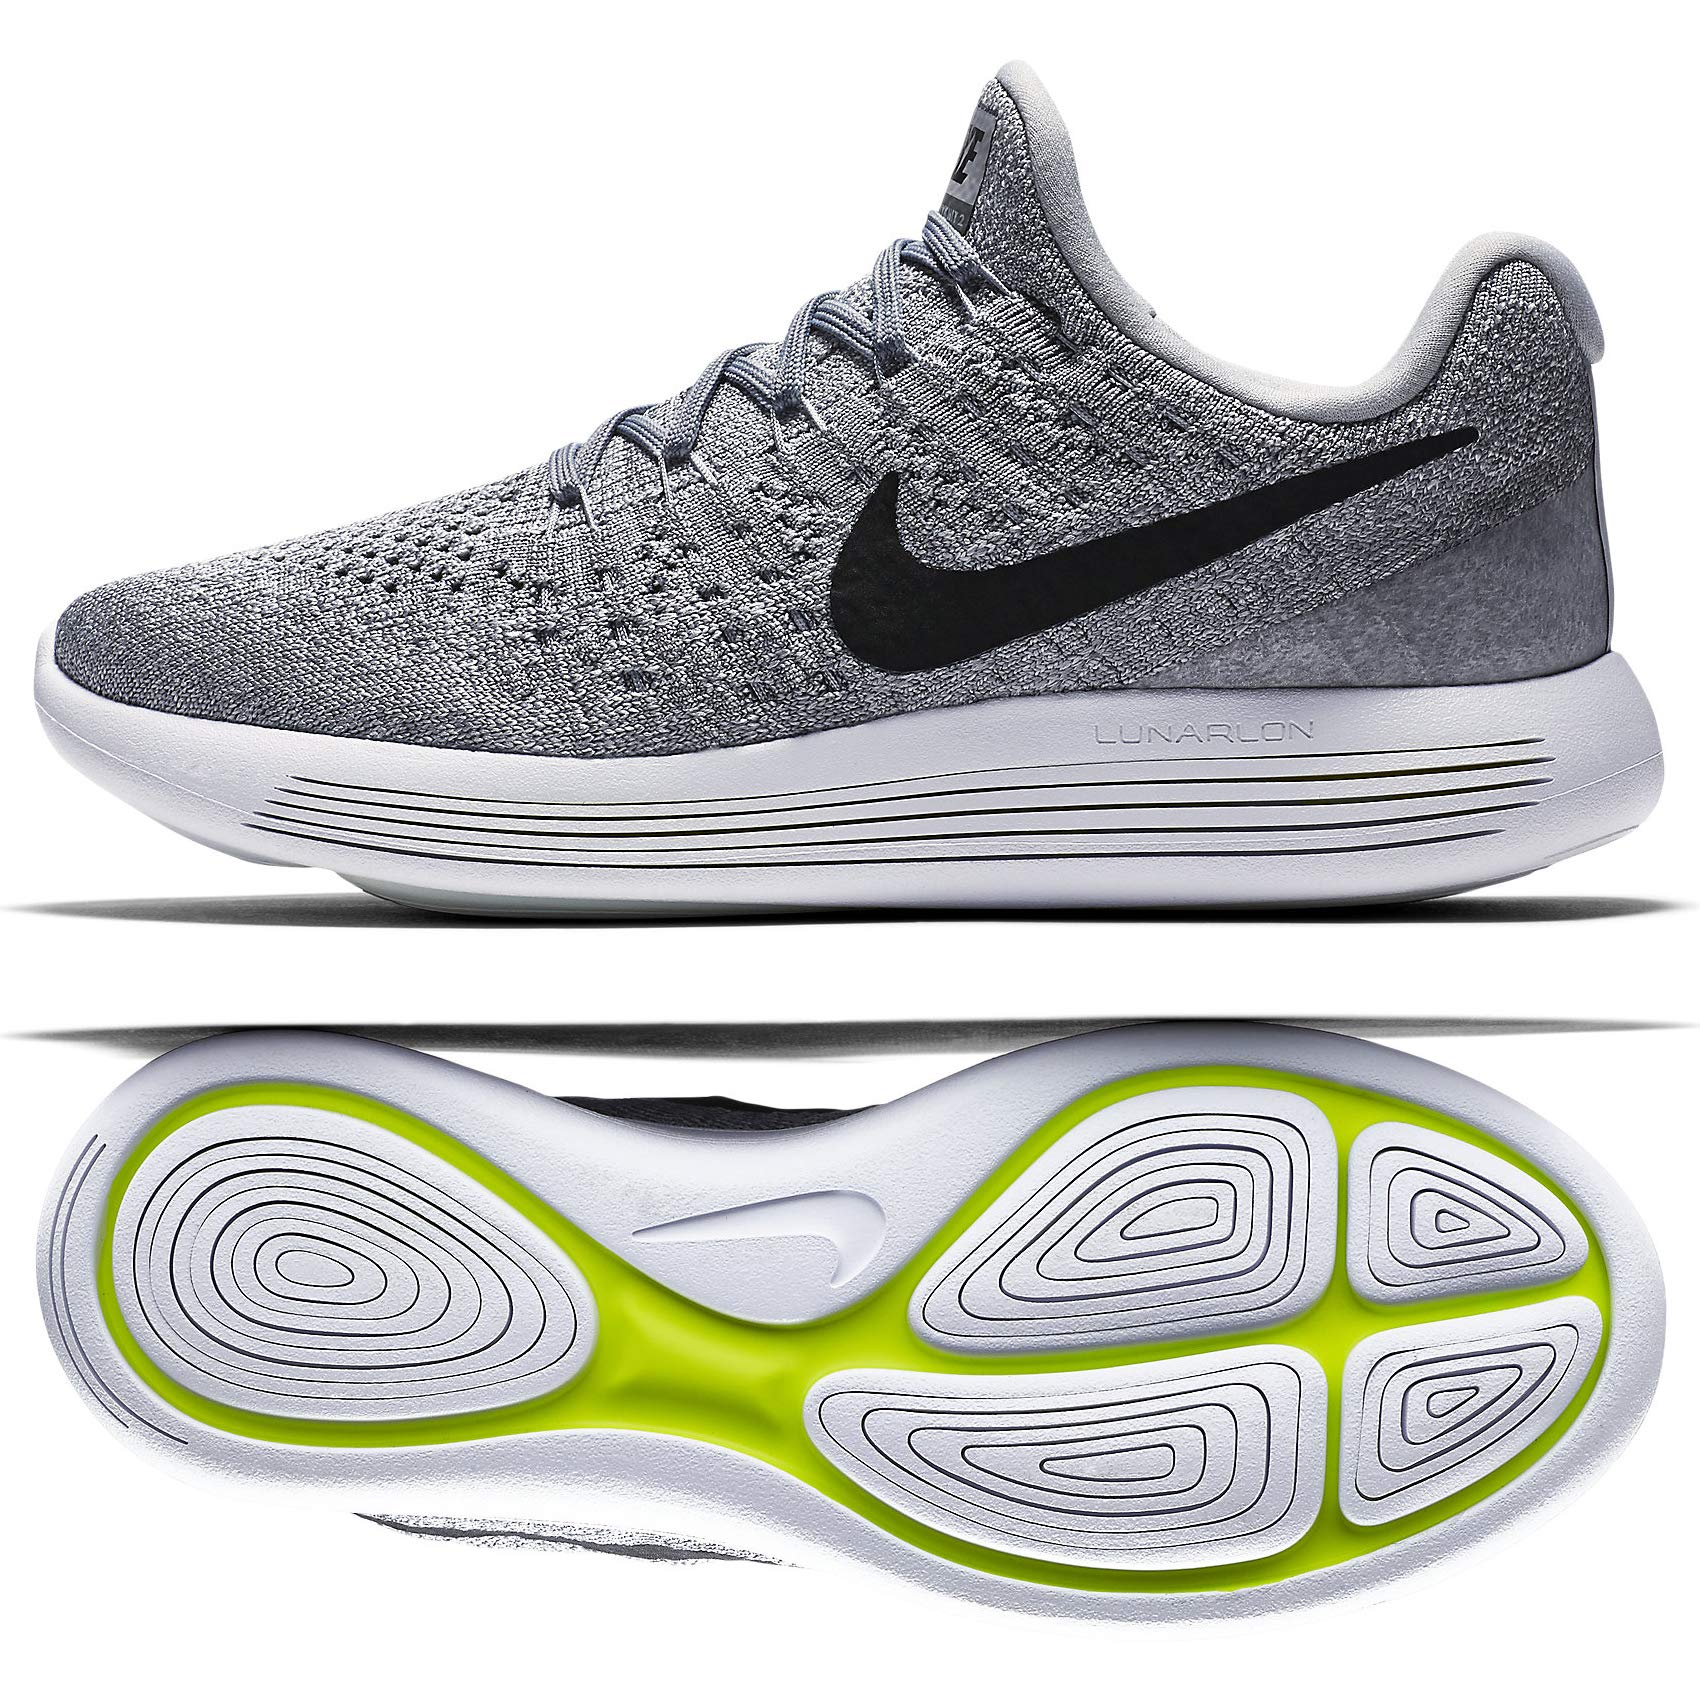 the latest c8169 7ca6f Nike Womens Lunarepic Low Flyknit 2 Wolf Grey/Black/Cool Grey Running Shoe  7.5 Women US